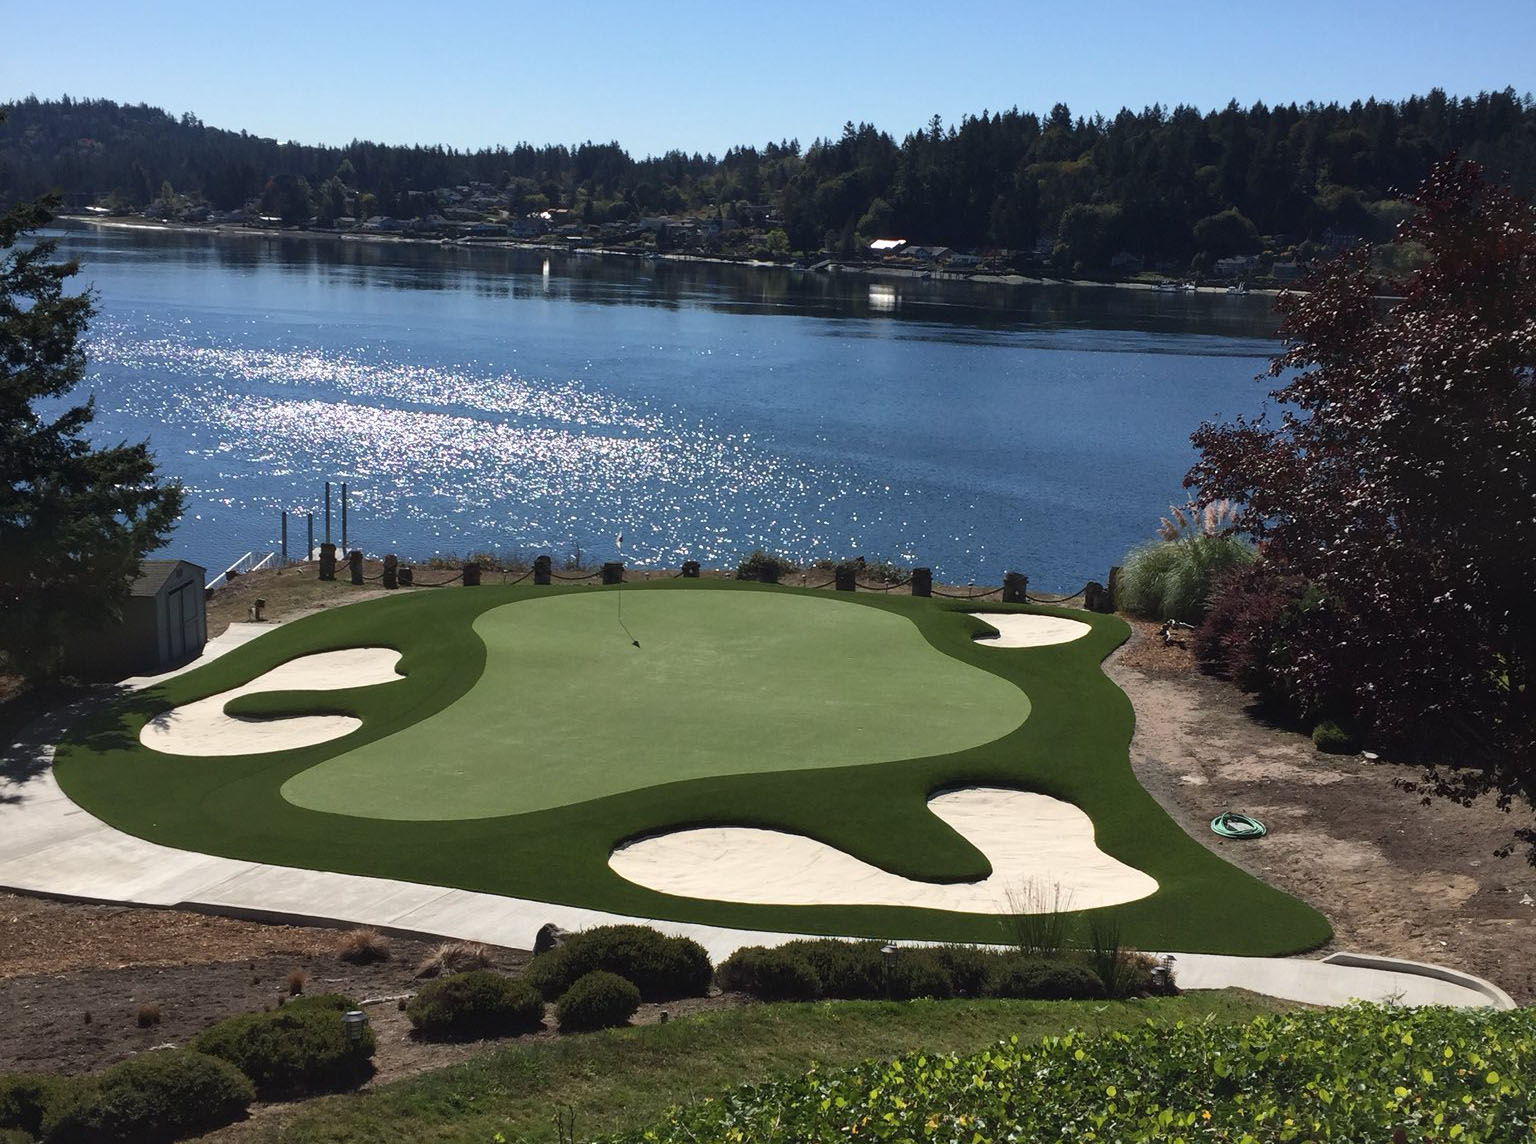 synthetic turf golf green with bunkers on water